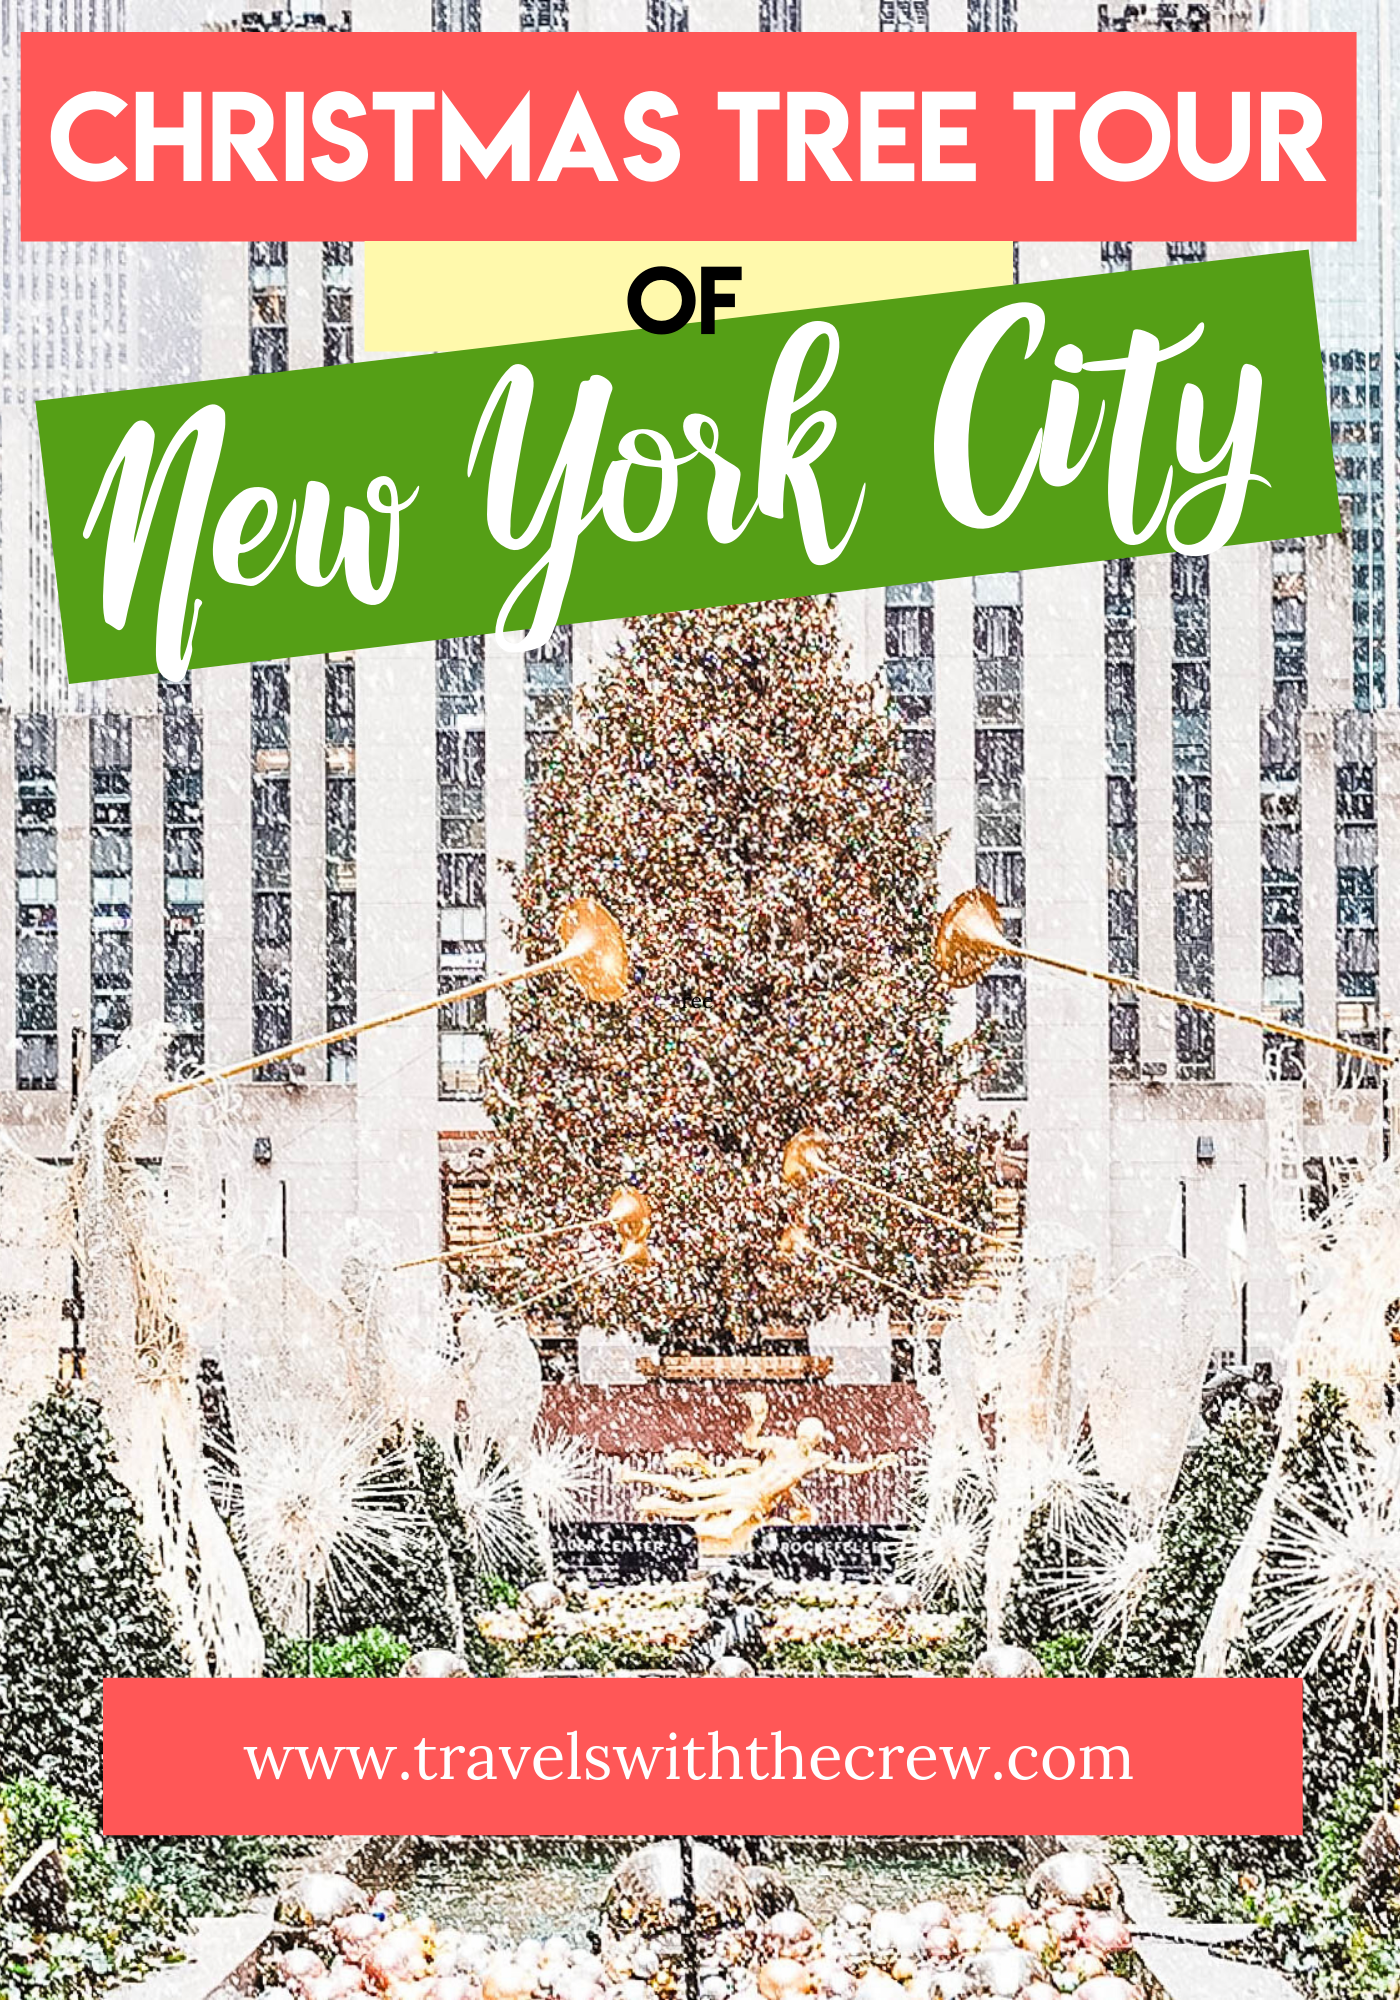 Free Printable Map of the best Christmas trees in New York City. Enjoy the beautiful decorations and enjoy free holiday cheer. #Christmasinnyc #NYC #Christmastree #CheapNYC